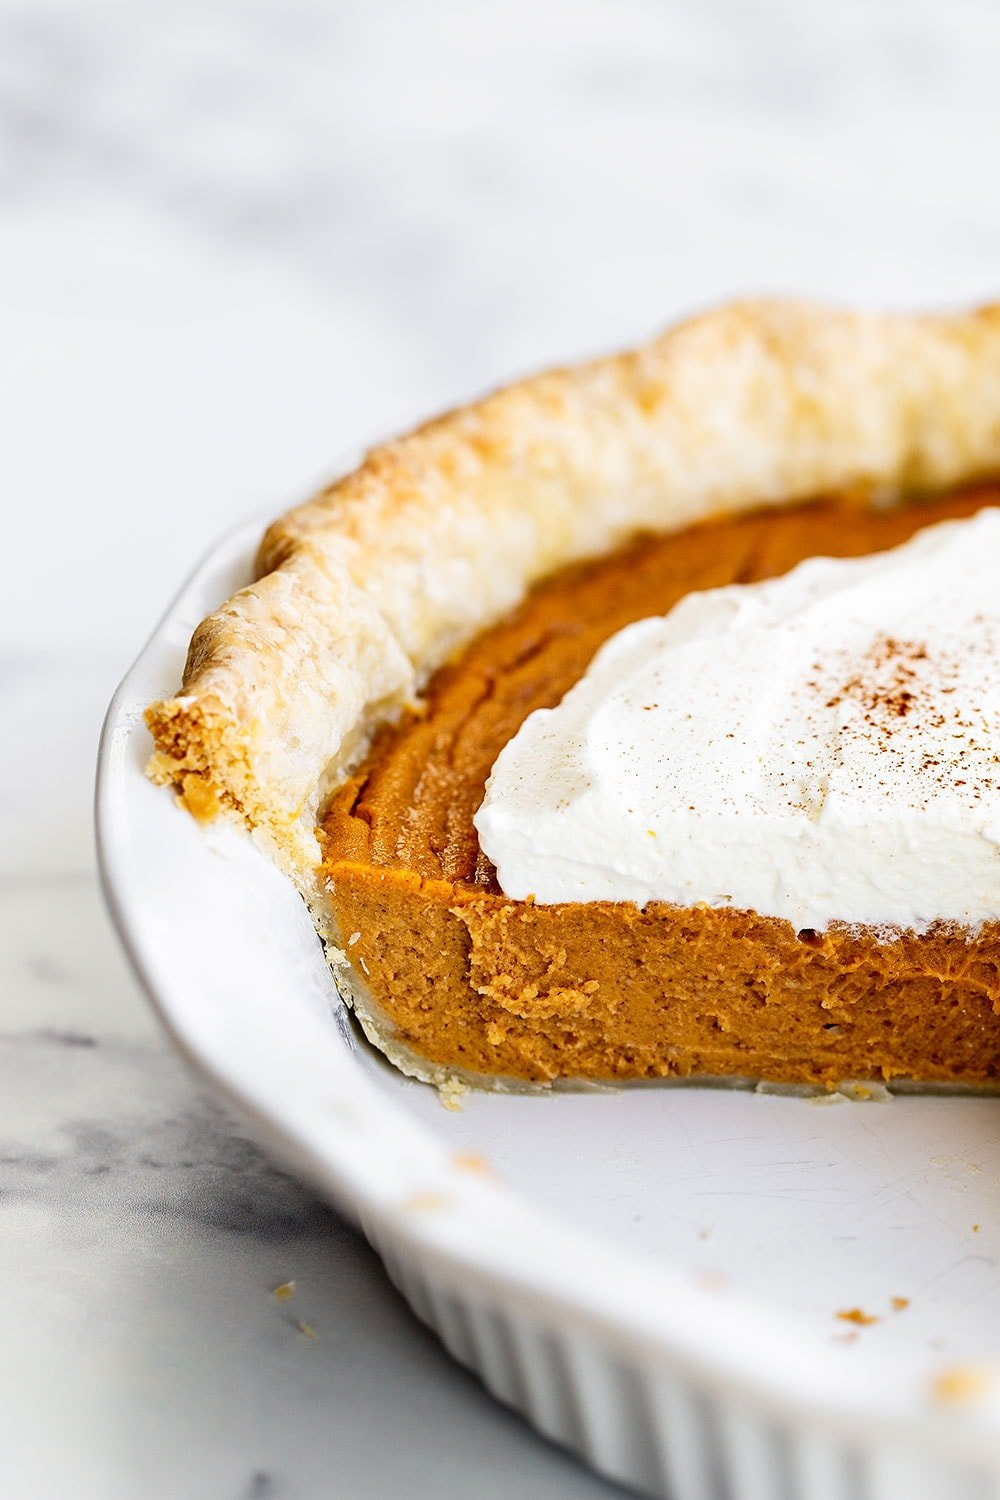 Slice of sweet potato pie taken out of pie dish